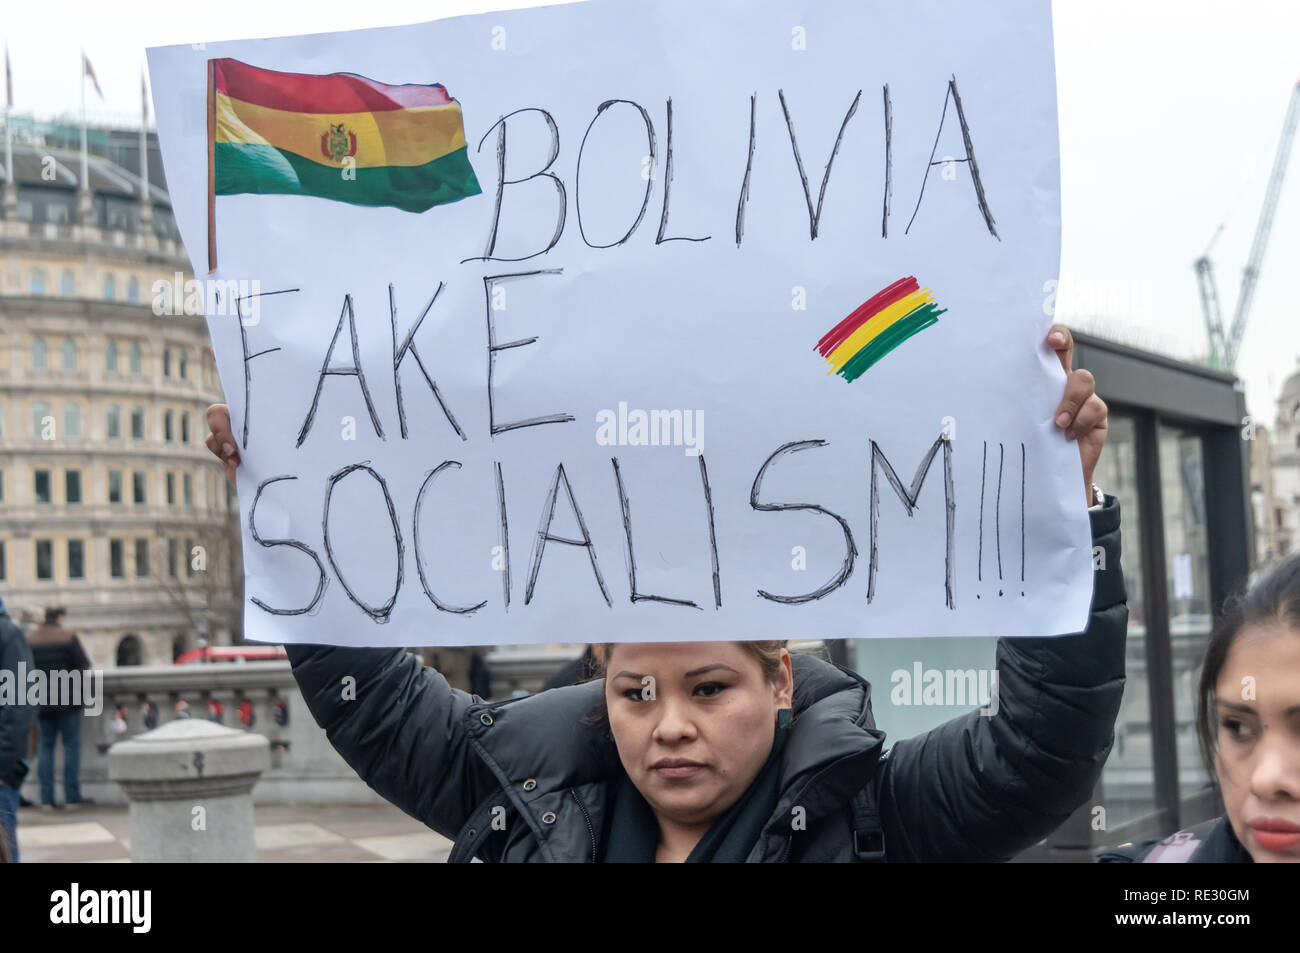 London, UK. 19th January 2019. Bolivians protested in Trafalgar Square against President Evo Morales after Bolivia's Electoral Tribunal ruled in December that he could stand for a fourth term in office in the November 2019 elections, for which there are primaries on January 27th. Morales was elected in 2005 and supported the 2009 constitution that allows only two consecutive terms. A change to allow more was narrowly rejected by a referendum on 21st Feb 2016. Credit: Peter Marshall/Alamy Live News Stock Photo